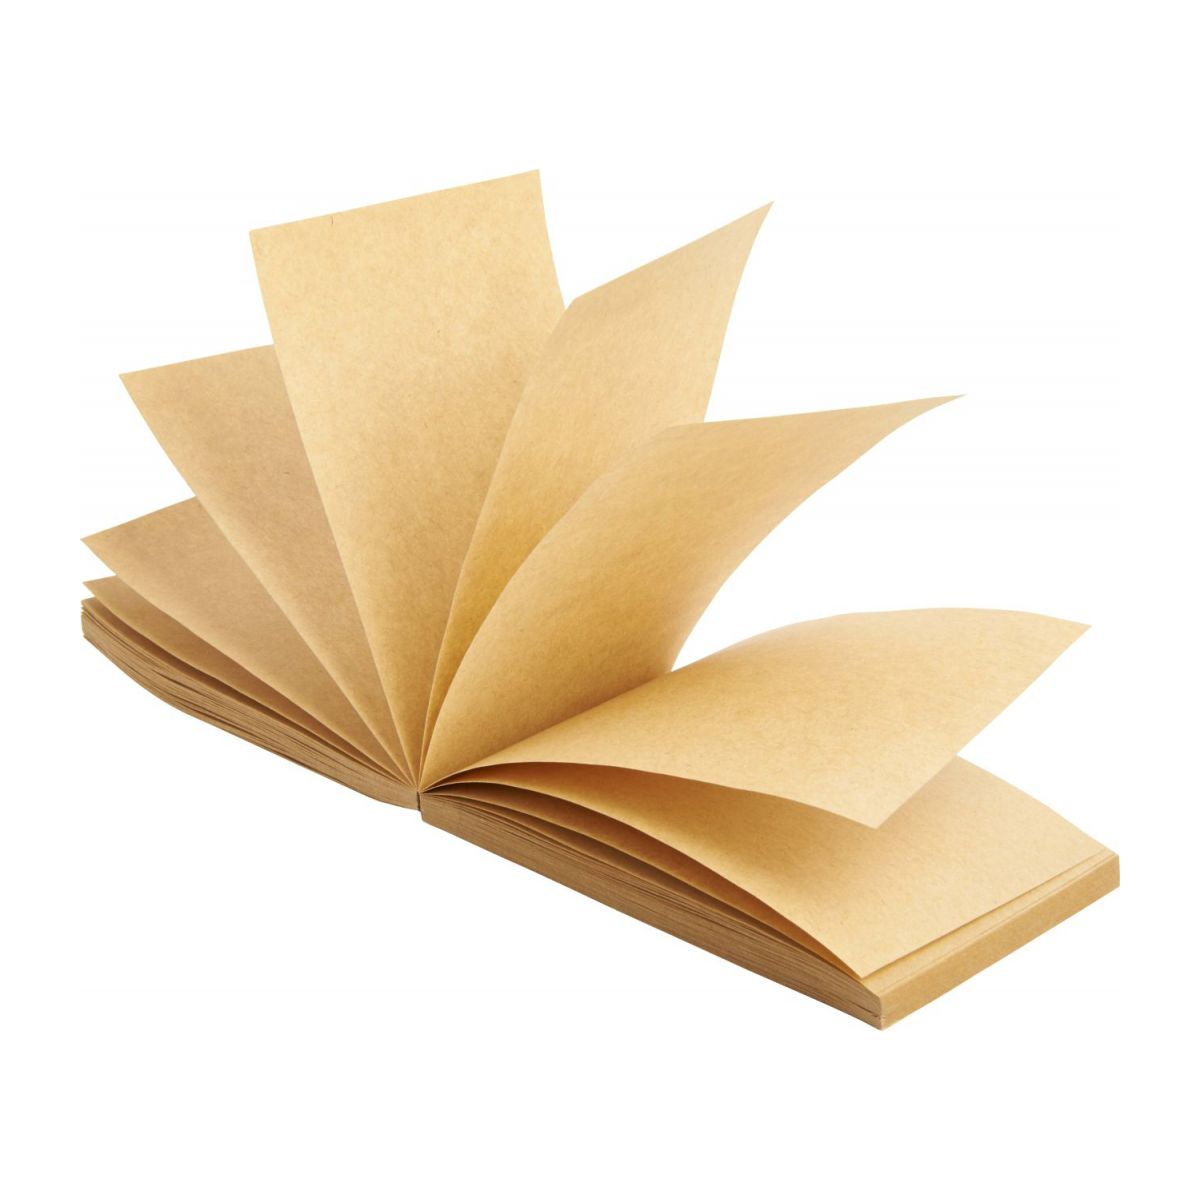 Stationery box (10 pieces) n°10